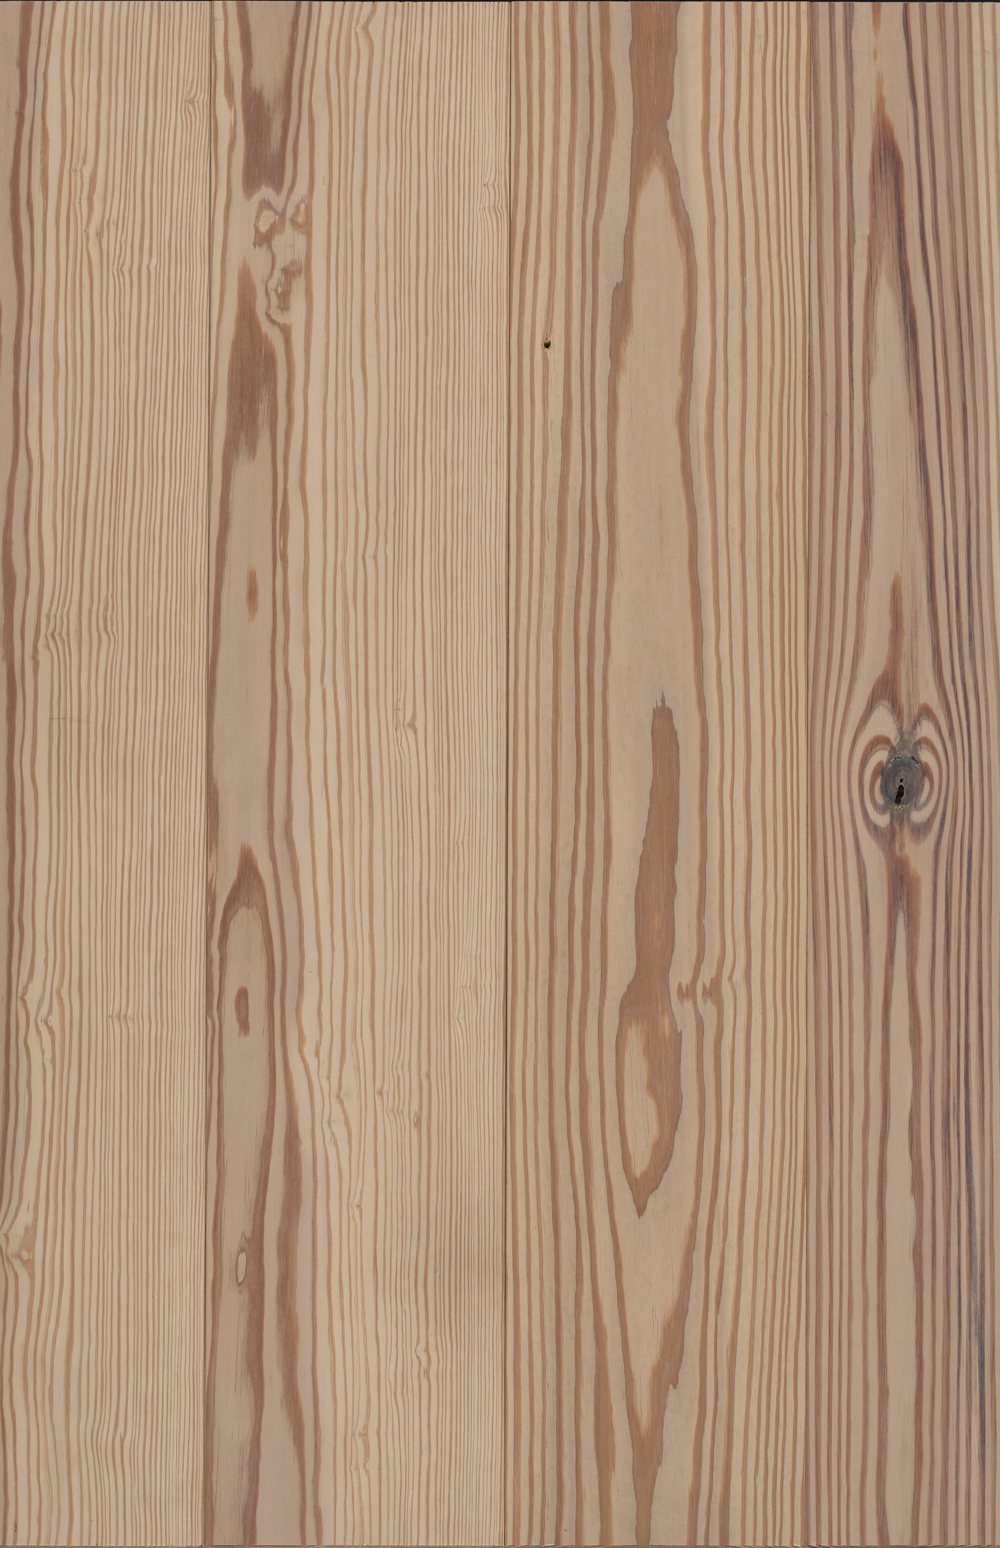 Reclaimed Heart Pine Softwood Flooring [Chalk Finish]